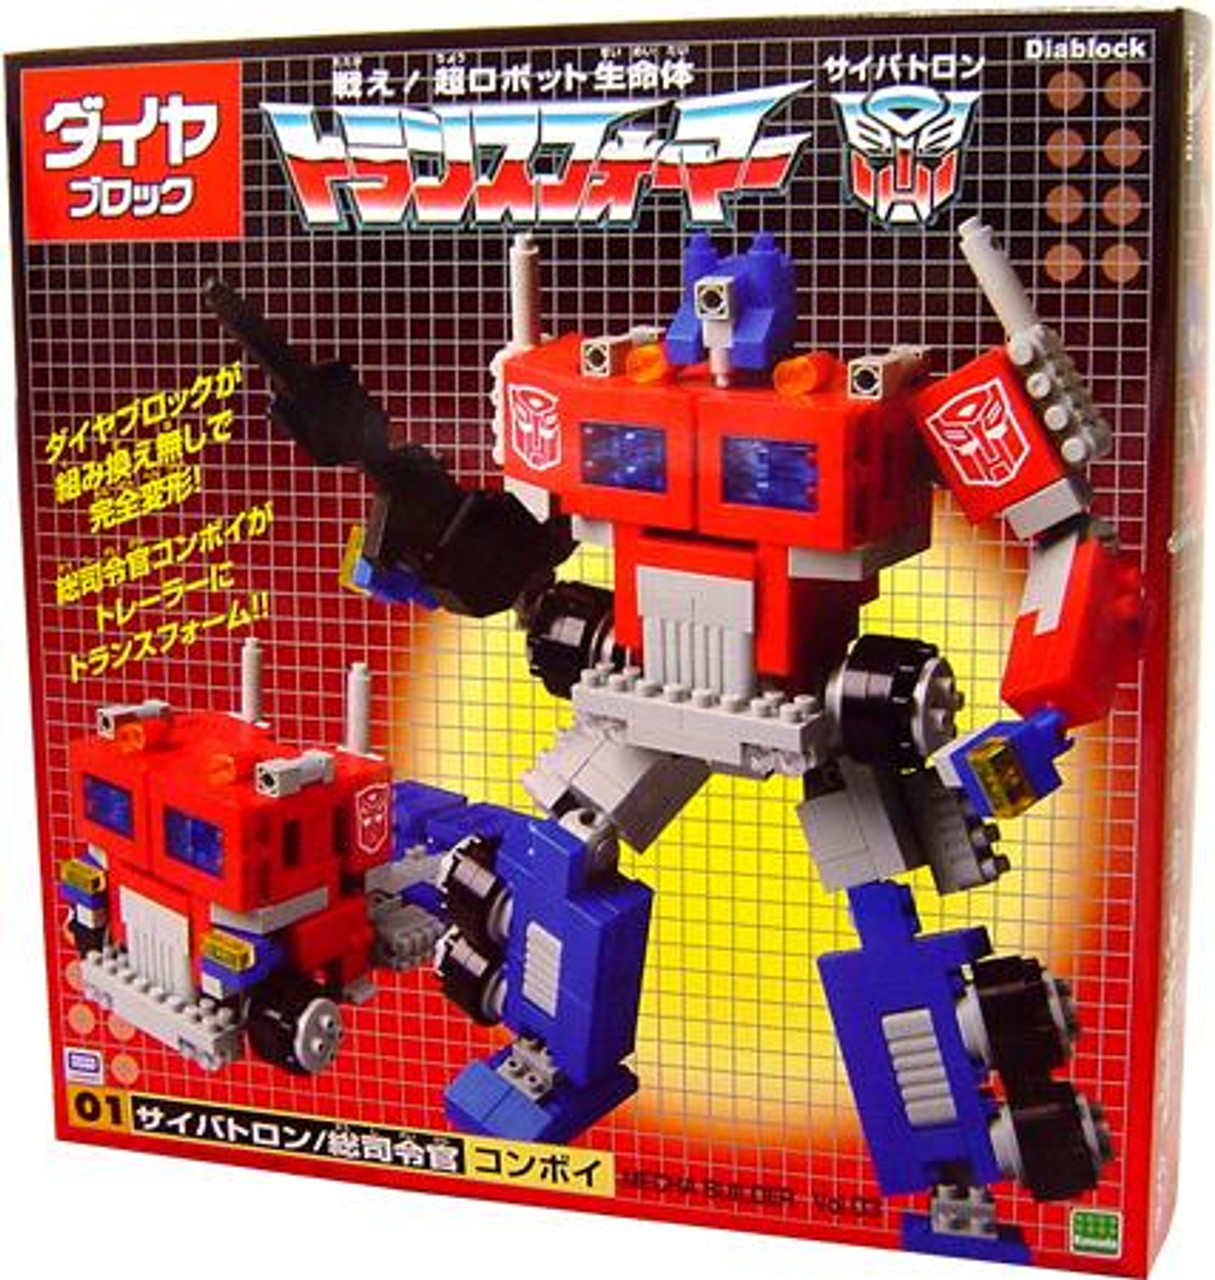 "Transformers Japanese Diablock Optimus Prime 11"" Action Figure #01"